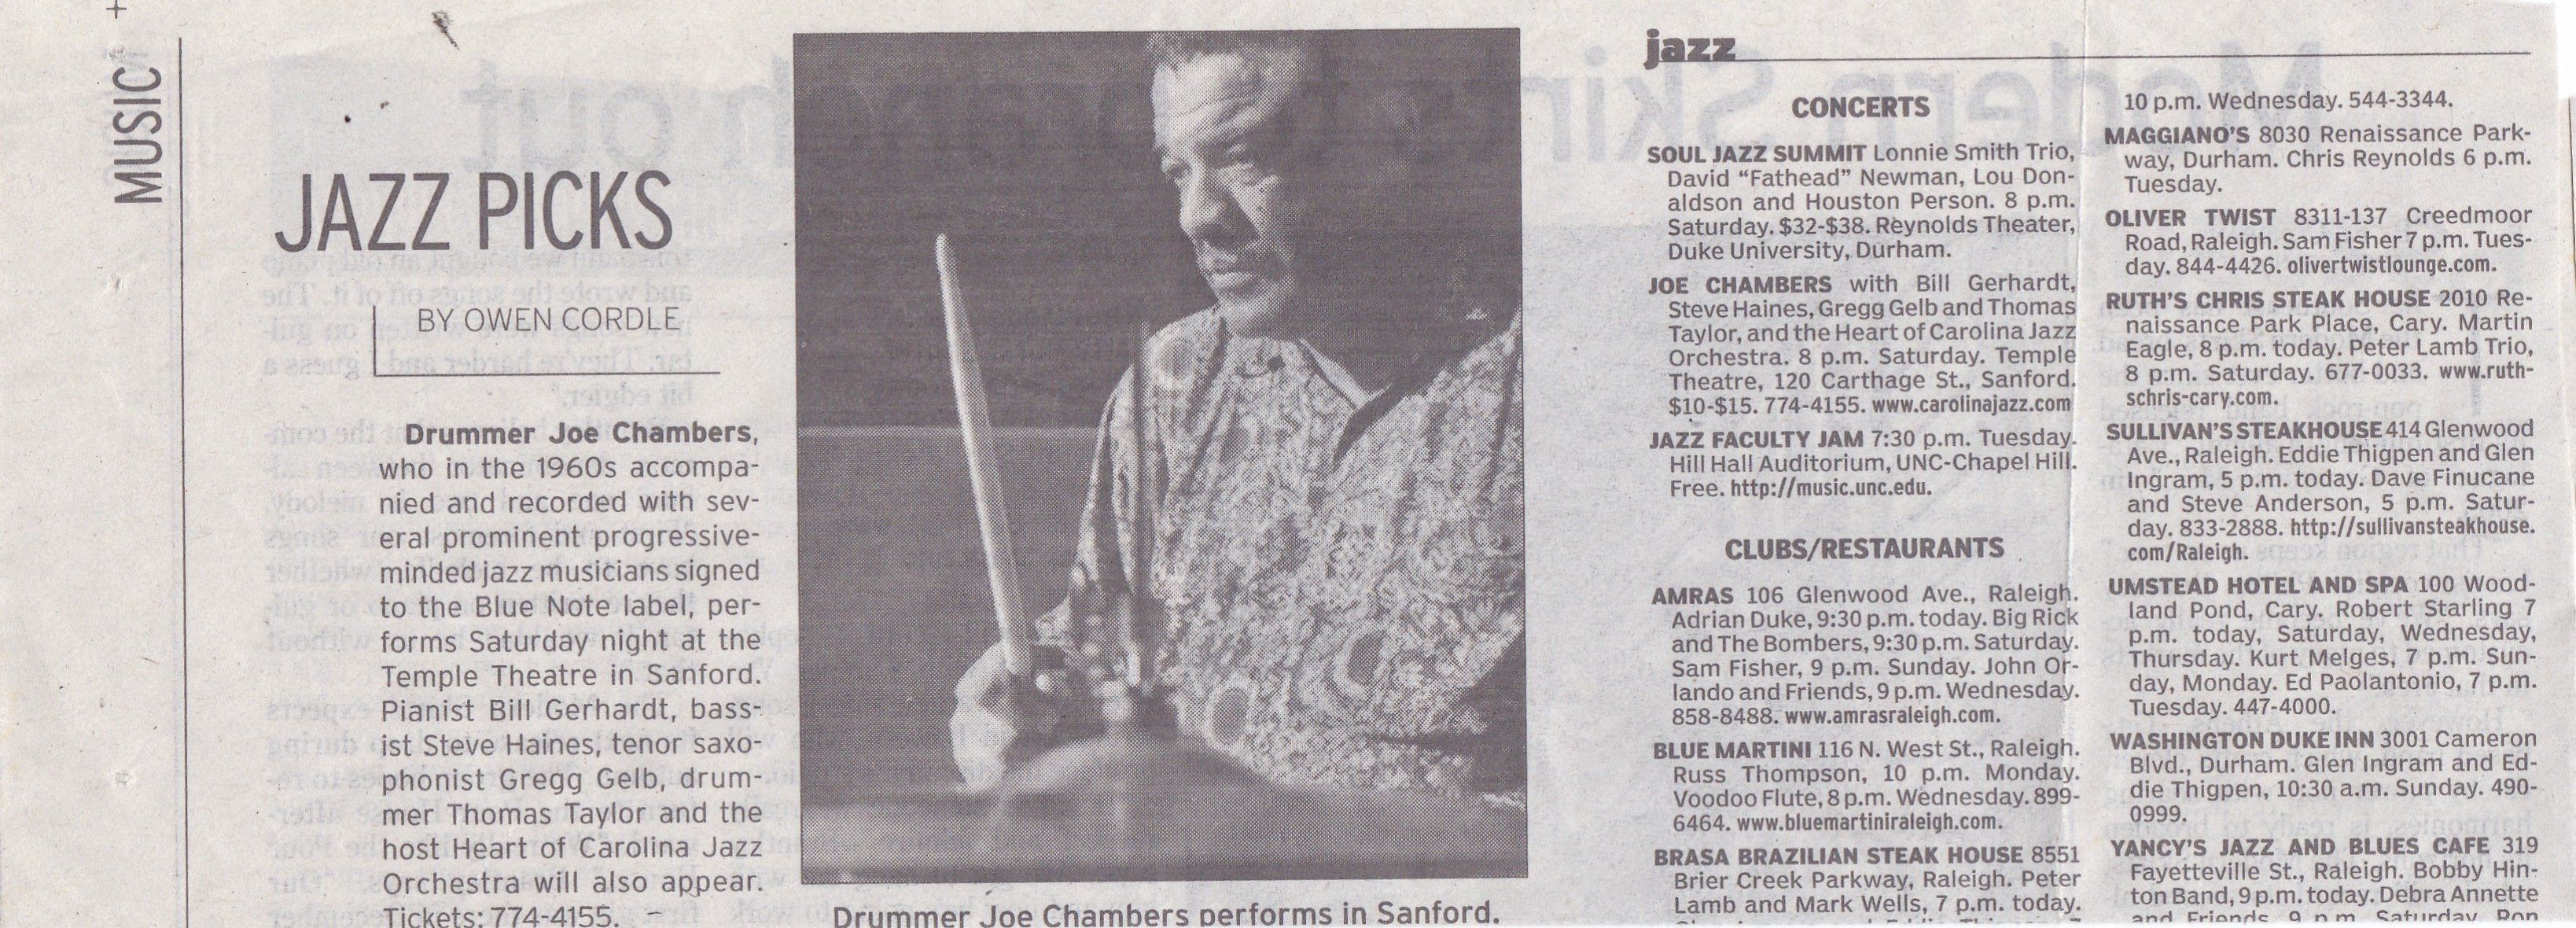 HOCJO-Guest-Joe-Chambers-Jazz-Picks